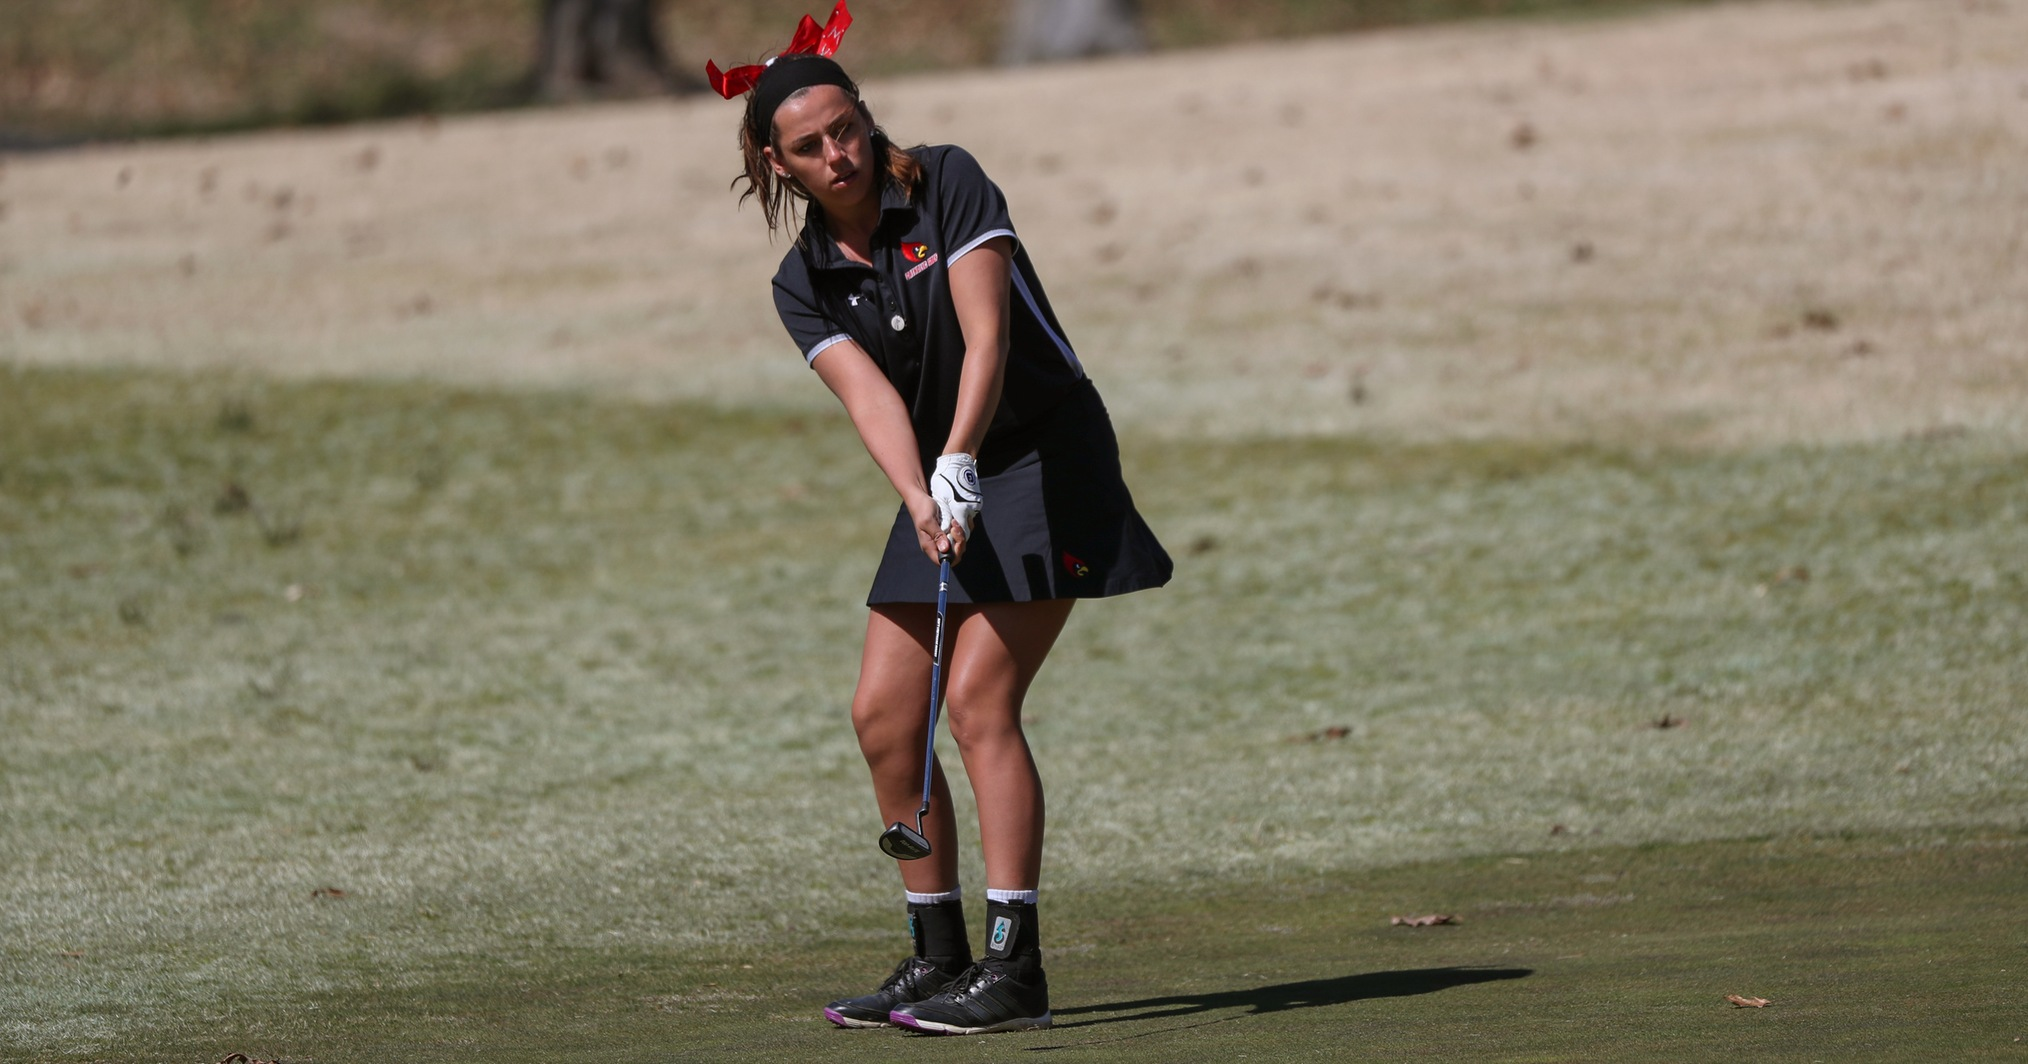 Cardinals Place Eighth at Eagle Invitational